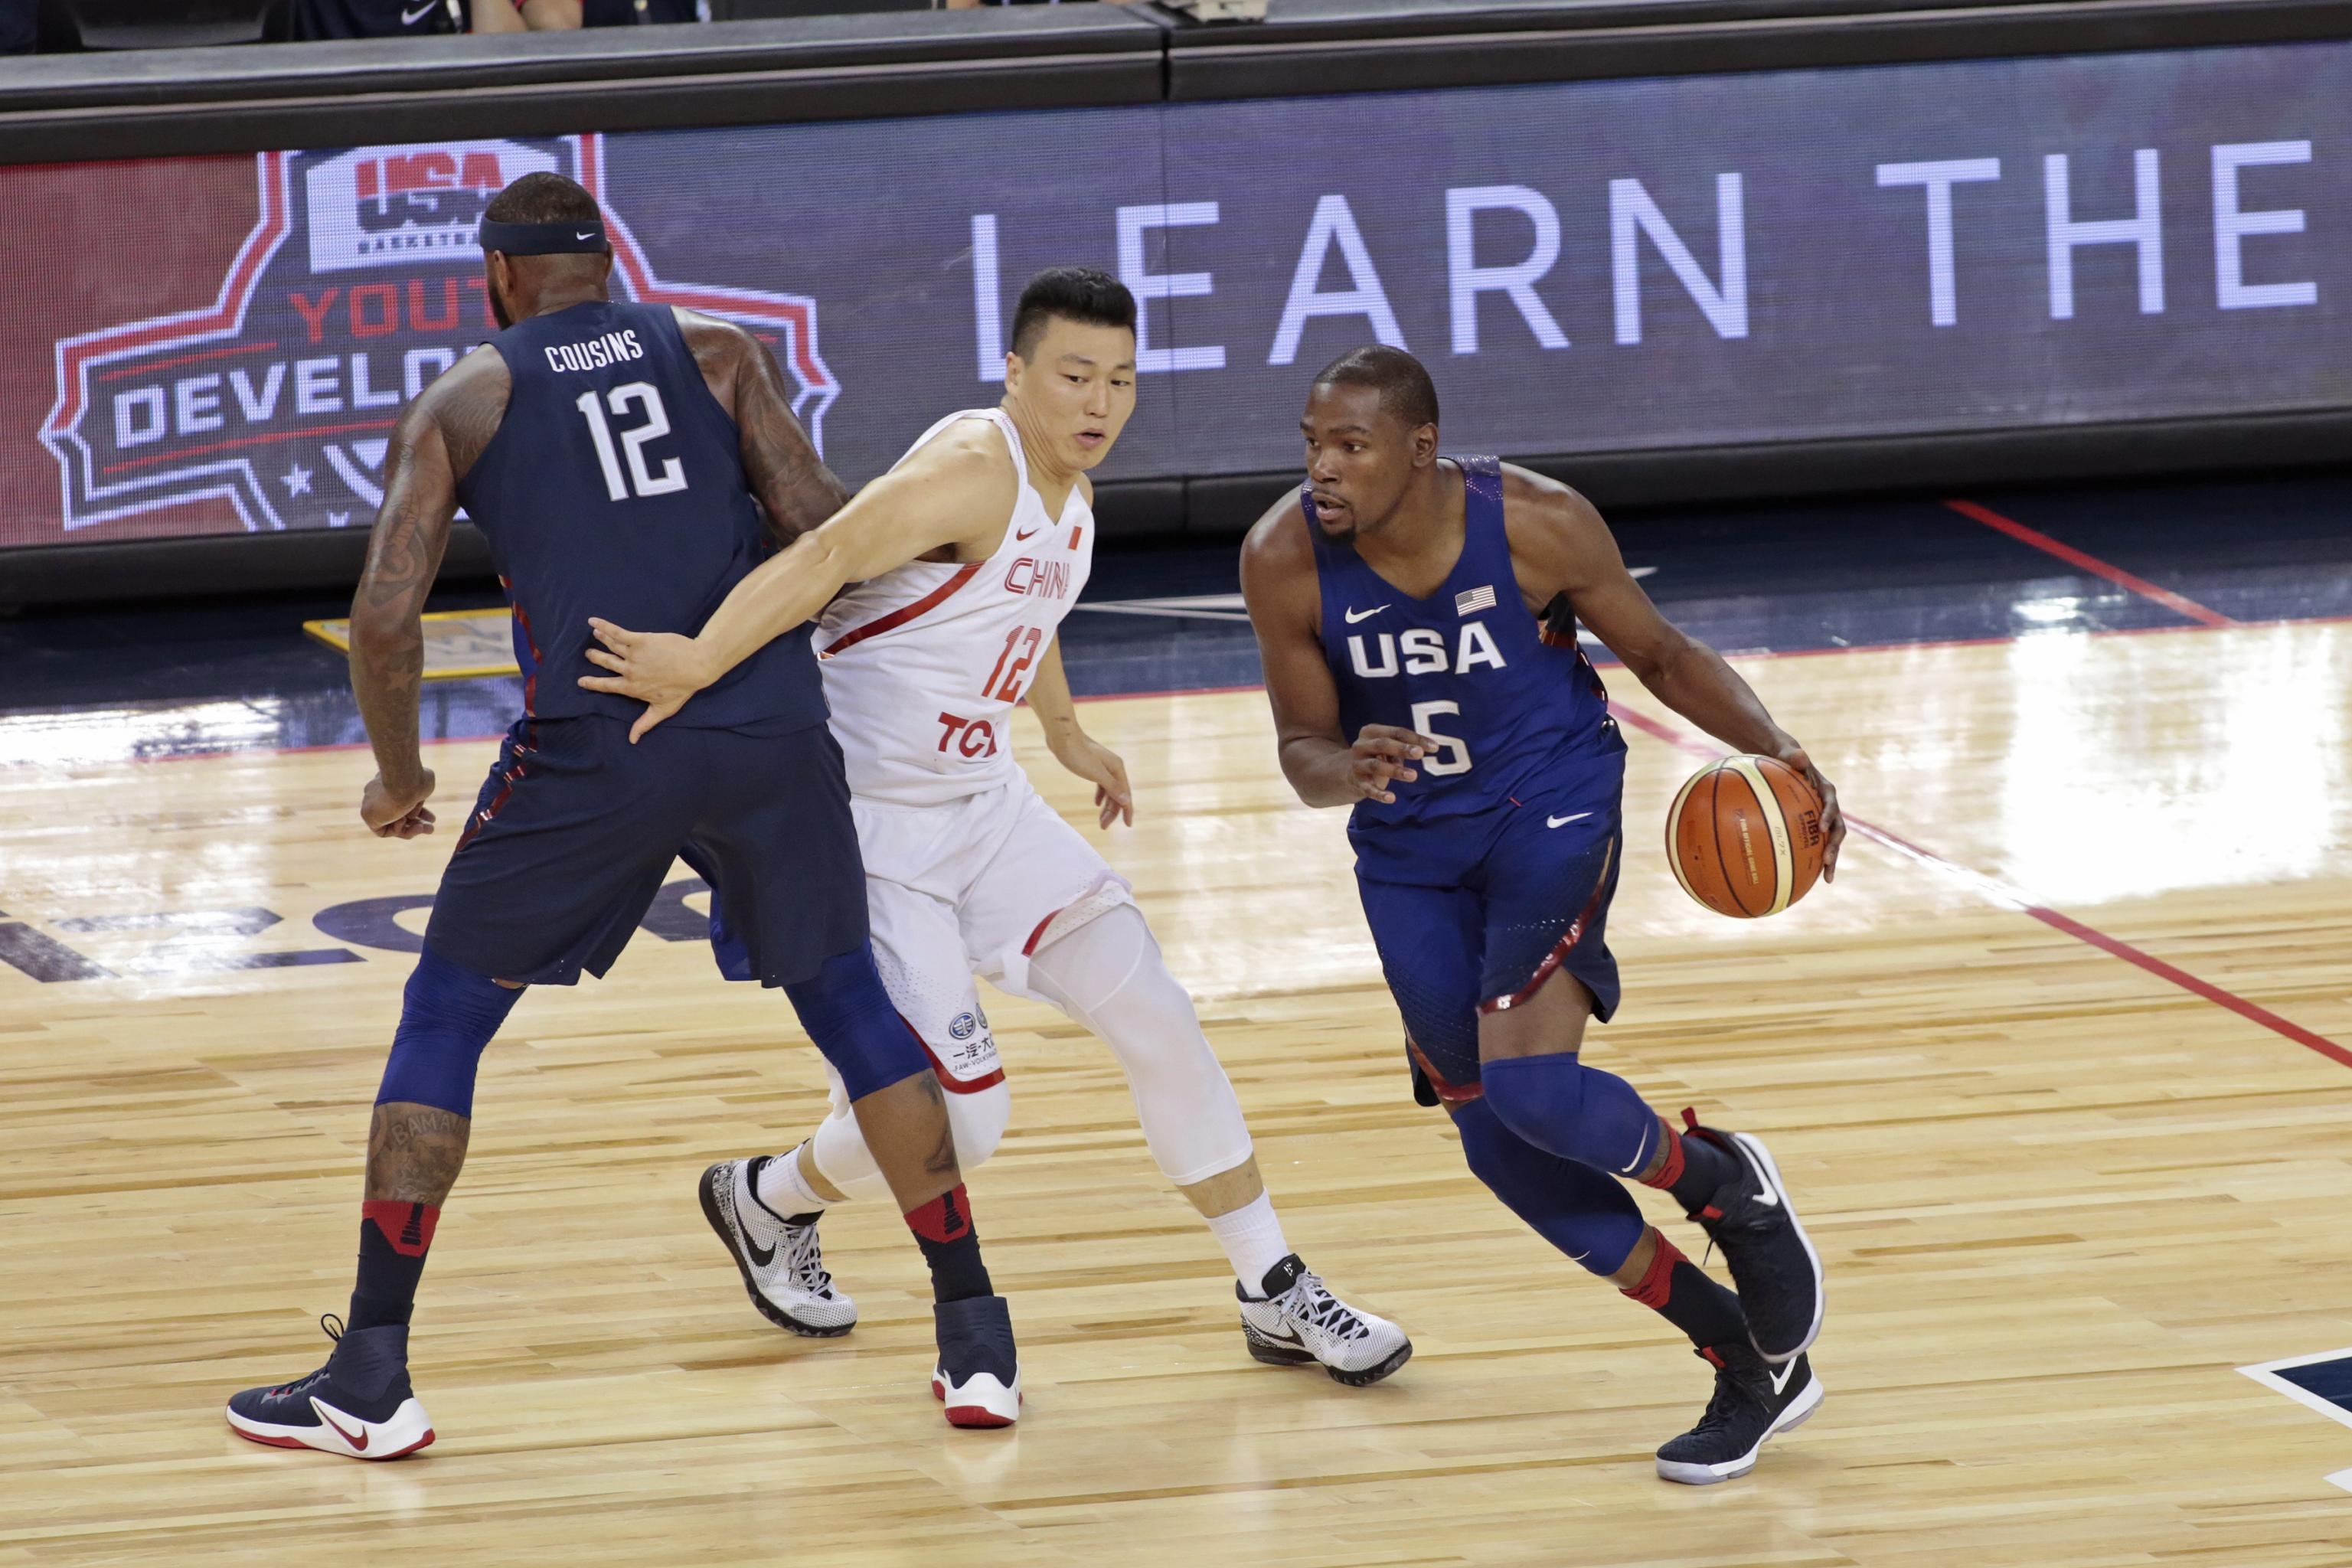 Olympic Basketball 2016 Scores Highlights And Reaction For Saturday S Results Bleacher Report Latest News Videos And Highlights Tcell's solution is the next generation of runtime attack monitoring and protection for web applications. olympic basketball 2016 scores